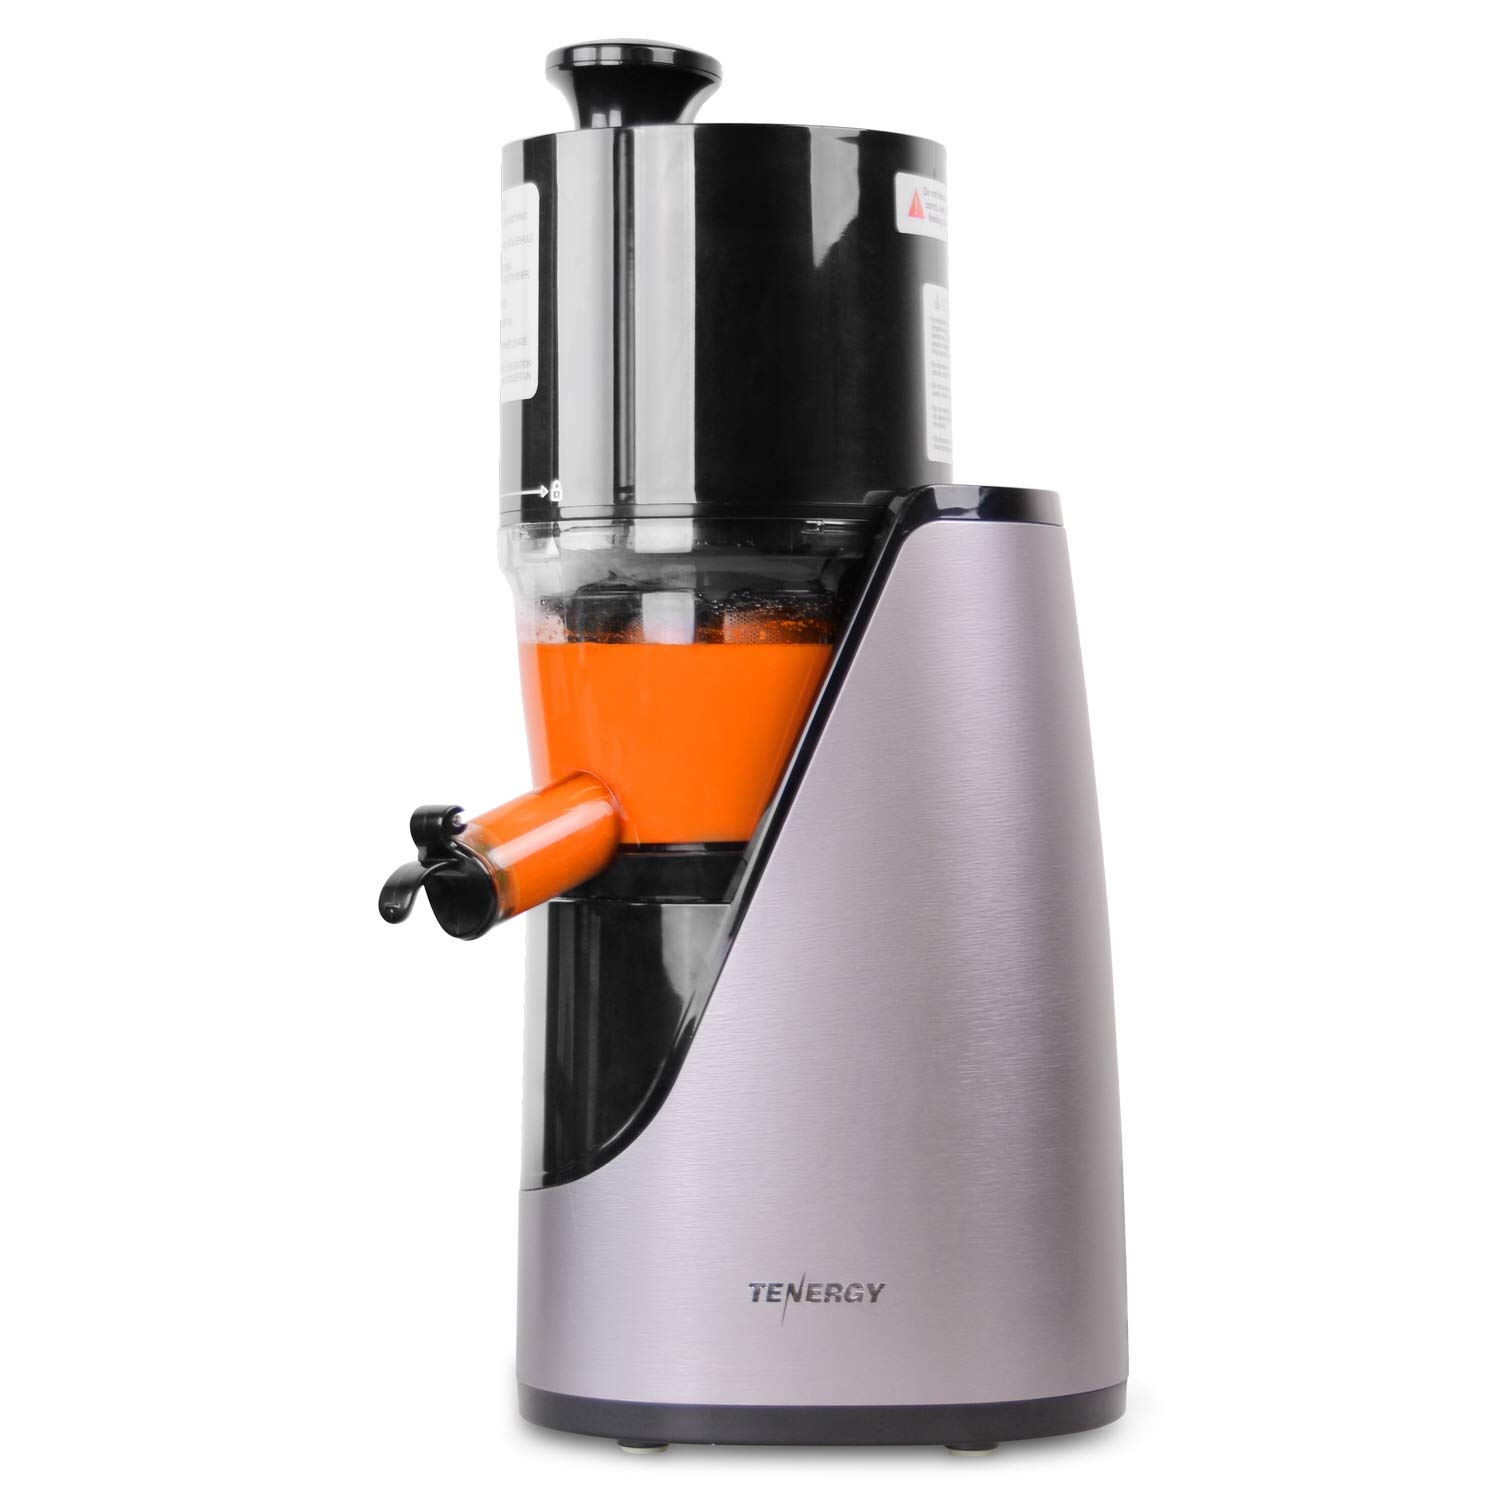 Tenergy Masticating Juicer, Anti-Oxidation Slow Speed Cold Press Juicer, High Nutrient Fresh Vegetable and Fruit Juice Extractor, Easy to Clean Juicer with Jug and Brush